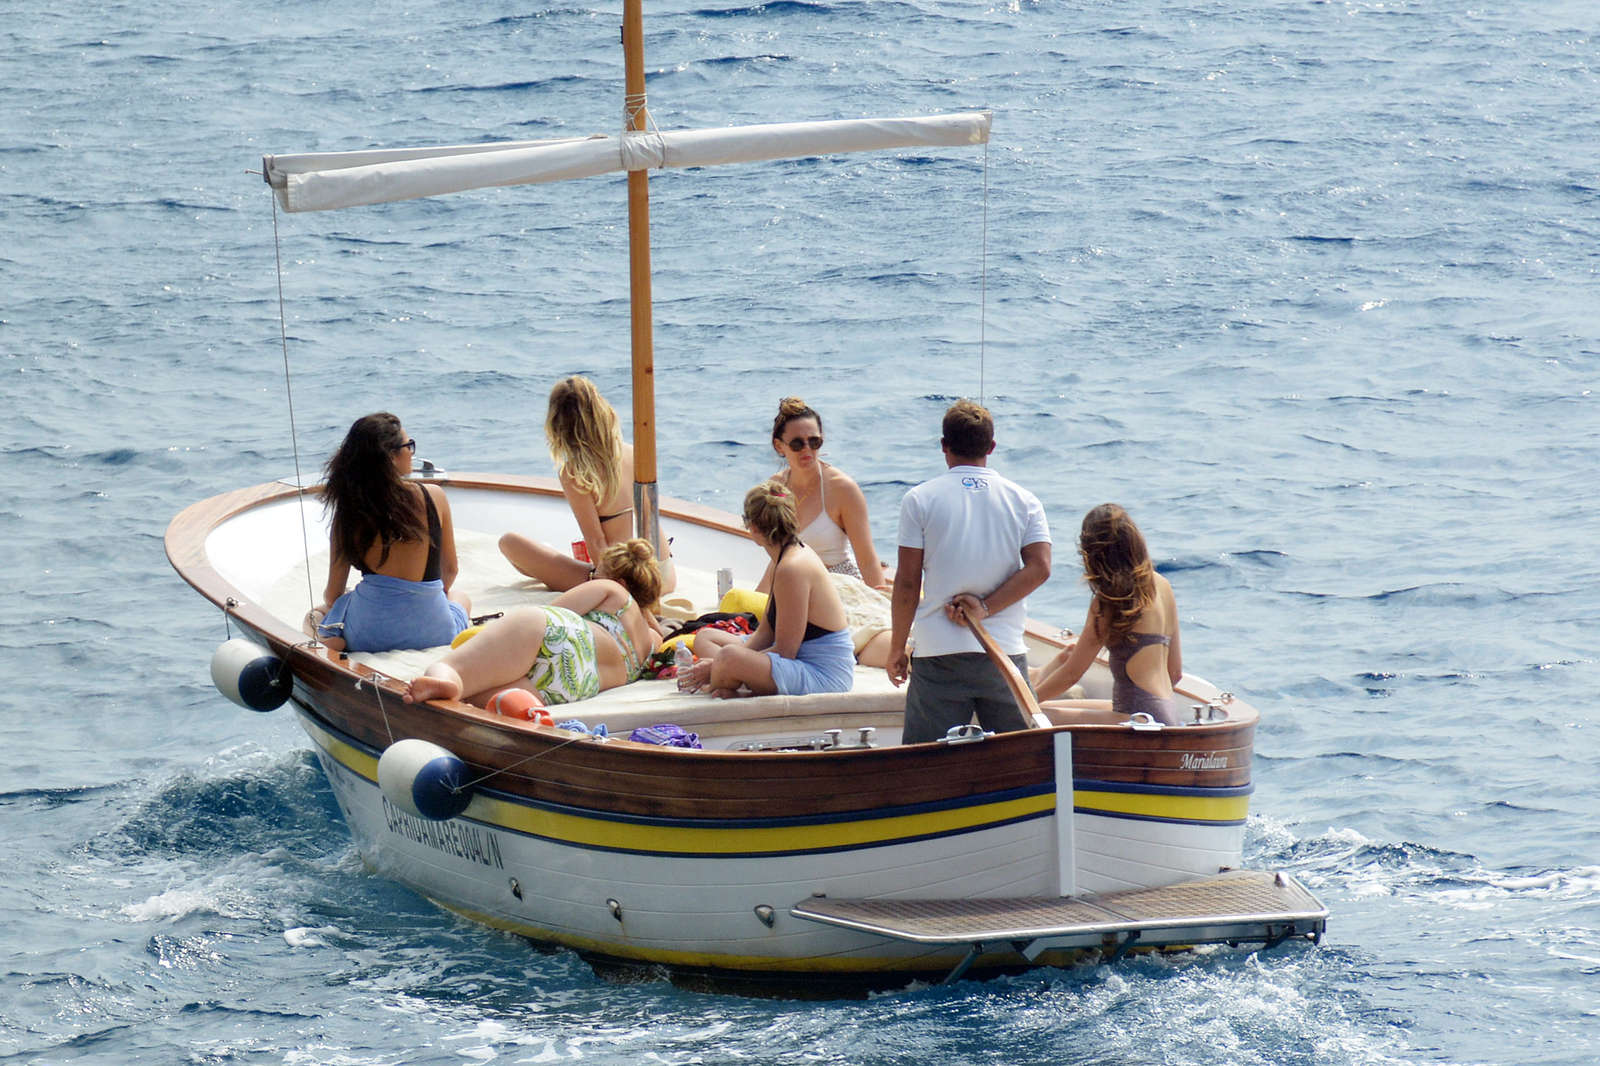 Ashley Benson 2016 : Ashley Benson, Shay Mitchell and Troian Bellisario on a boat in Capri -13